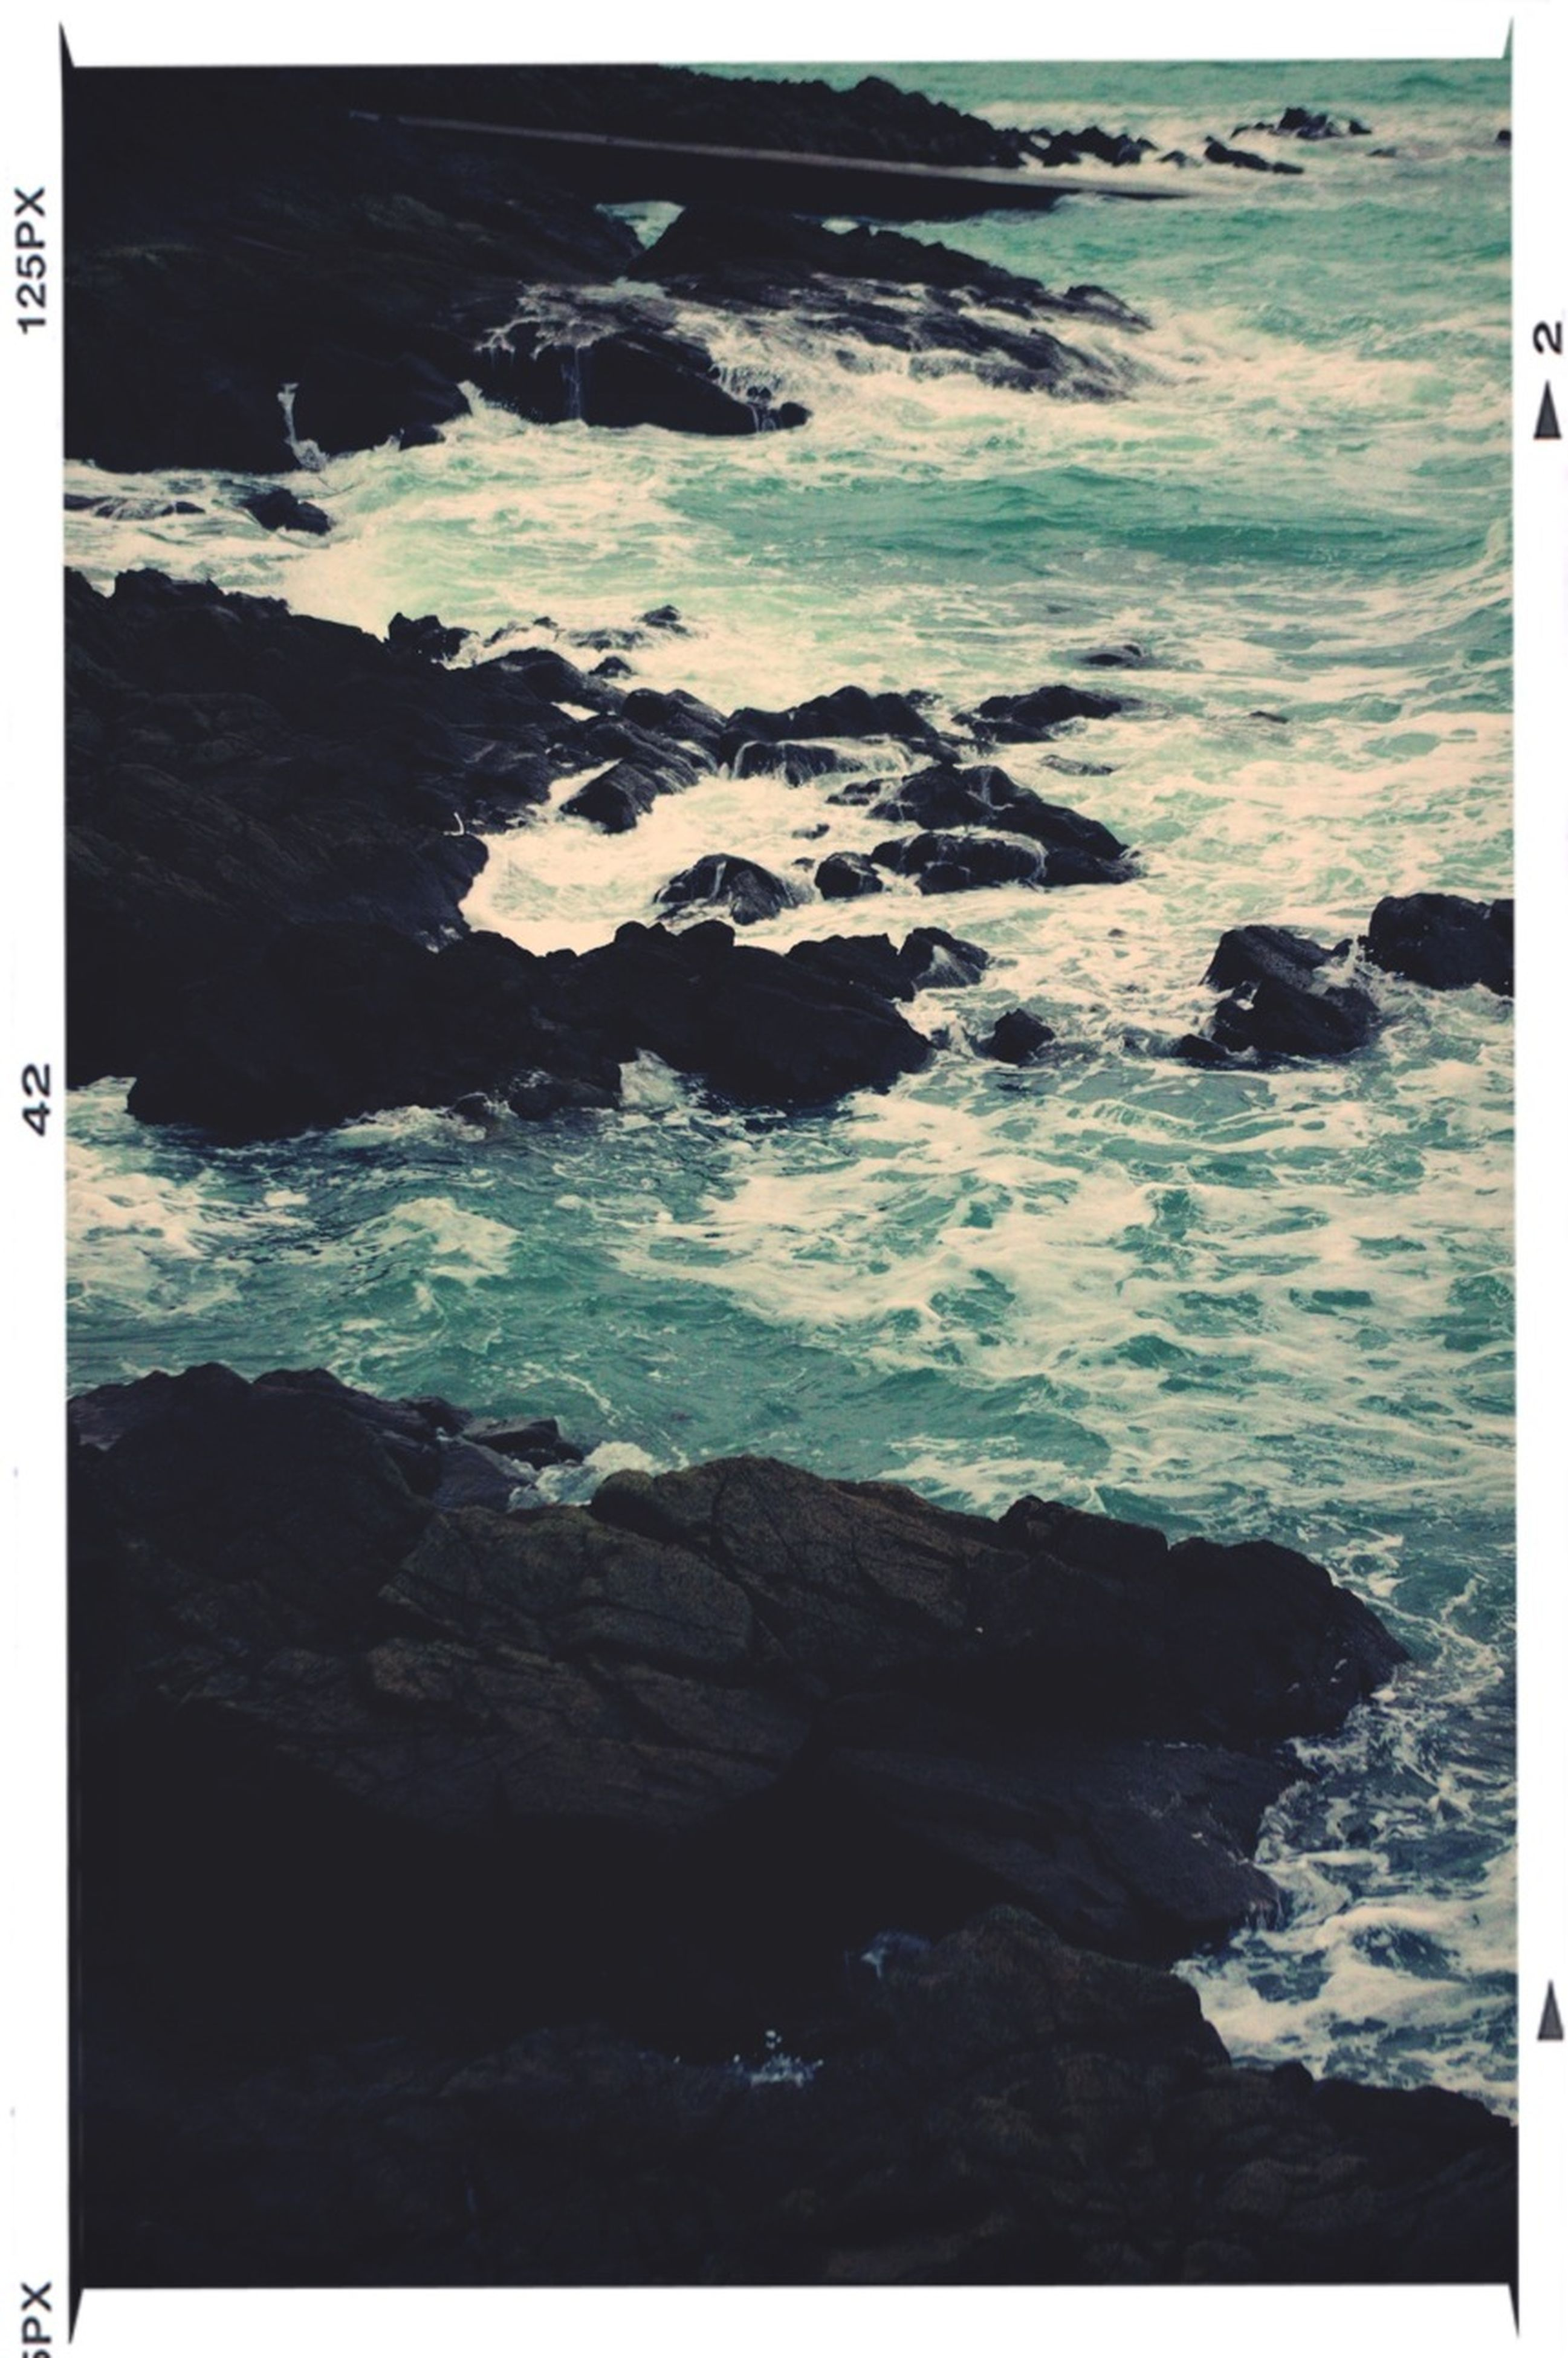 water, sea, transfer print, rock - object, auto post production filter, rock formation, scenics, beauty in nature, nature, tranquility, rock, tranquil scene, shore, beach, wave, high angle view, surf, horizon over water, coastline, idyllic